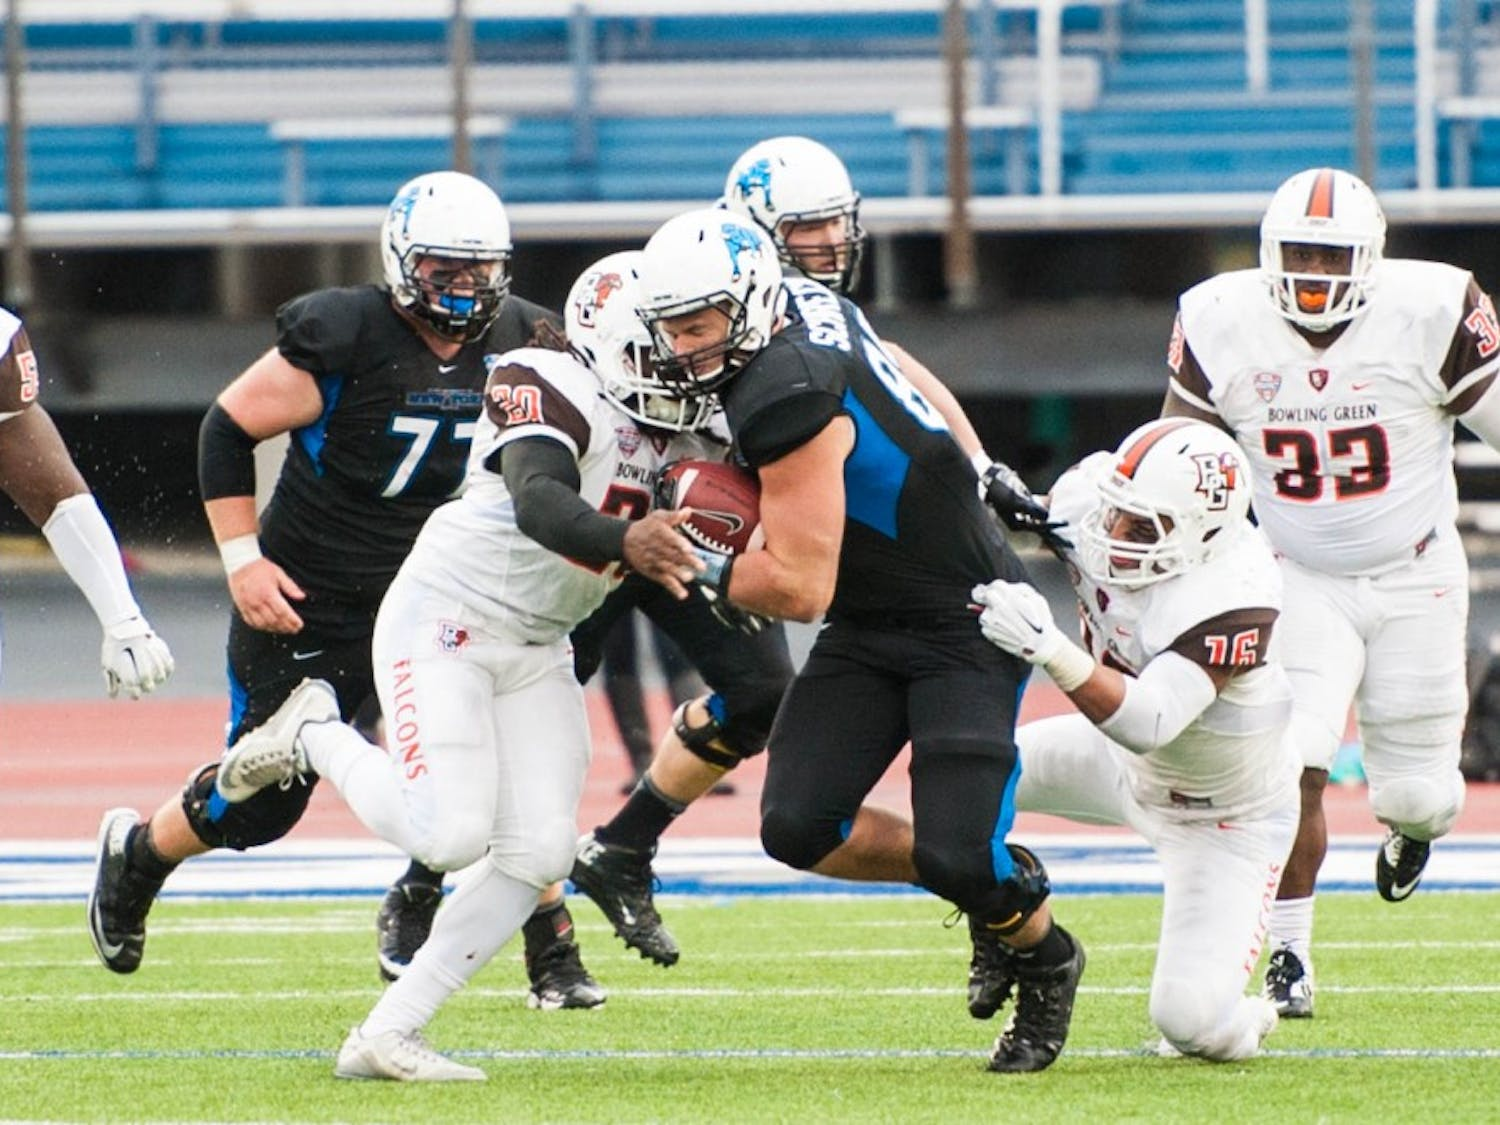 The football team (2-3, 0-1 Mid-American Conference) lost 28-22 to Bowling Green (3-2, 1-0 MAC) Saturday at UB Stadium in what was Buffalo's homecoming game.